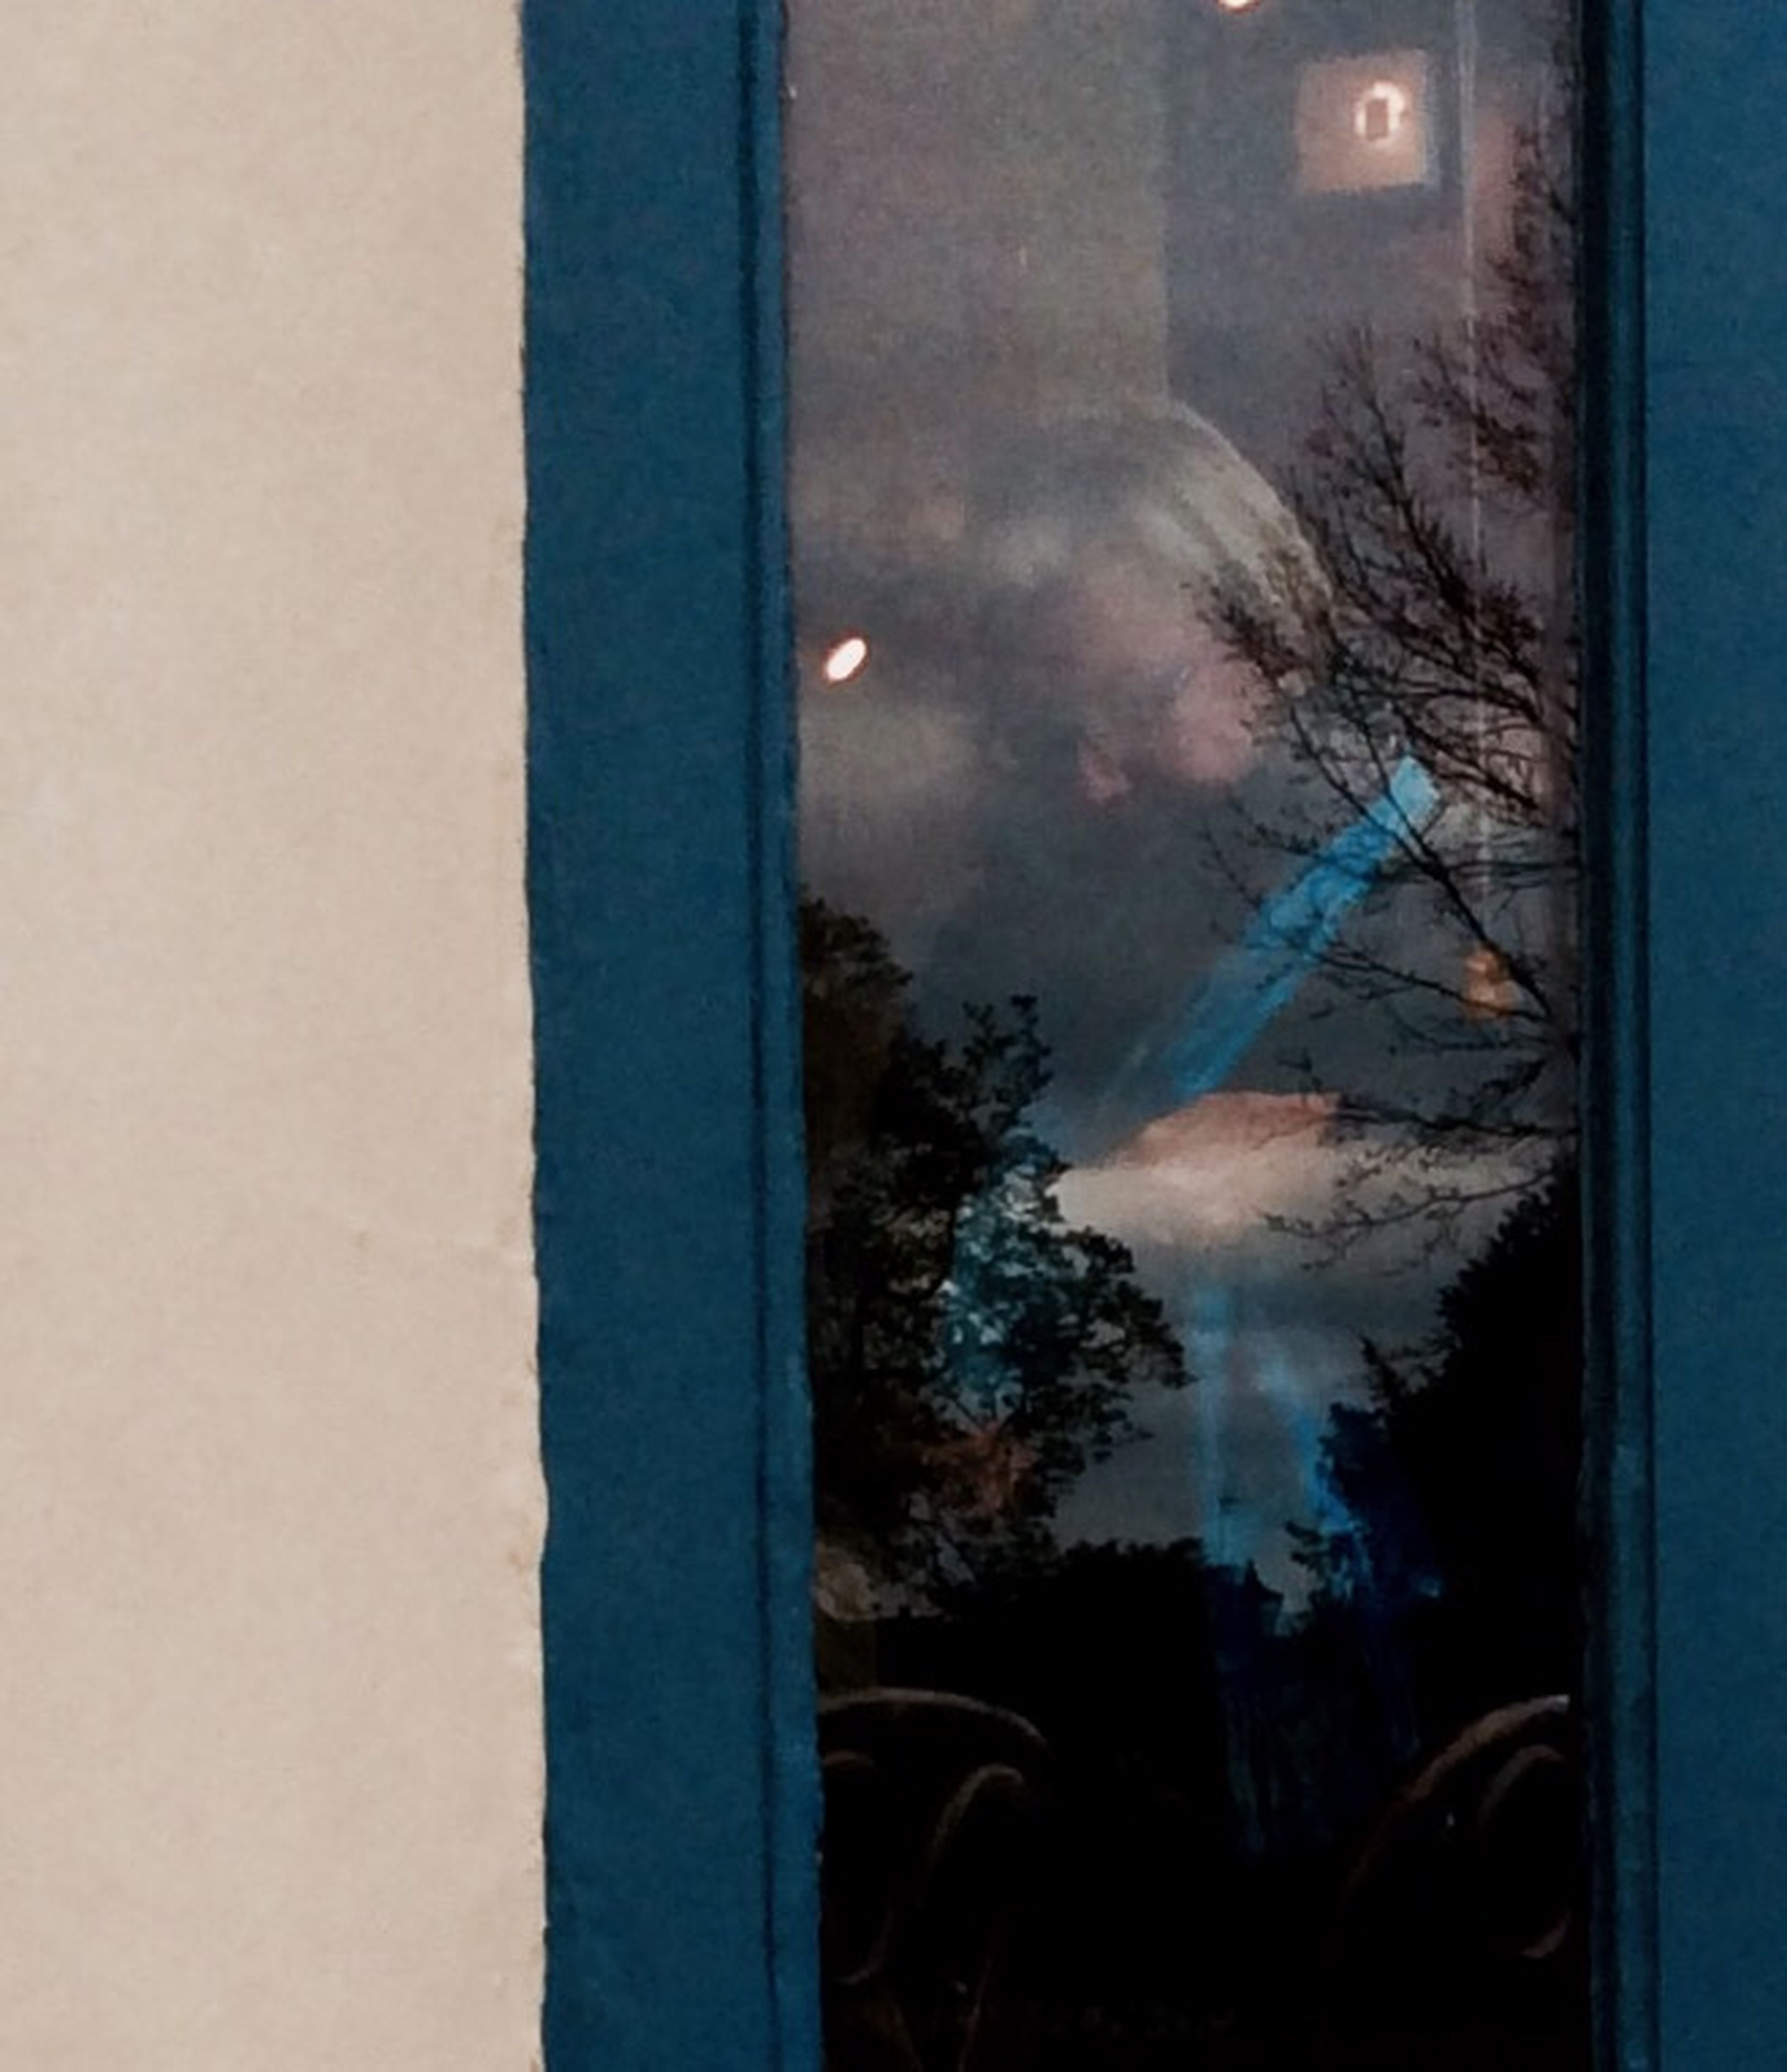 window, glass - material, tree, indoors, looking through window, snow, sky, no people, day, cold temperature, nature